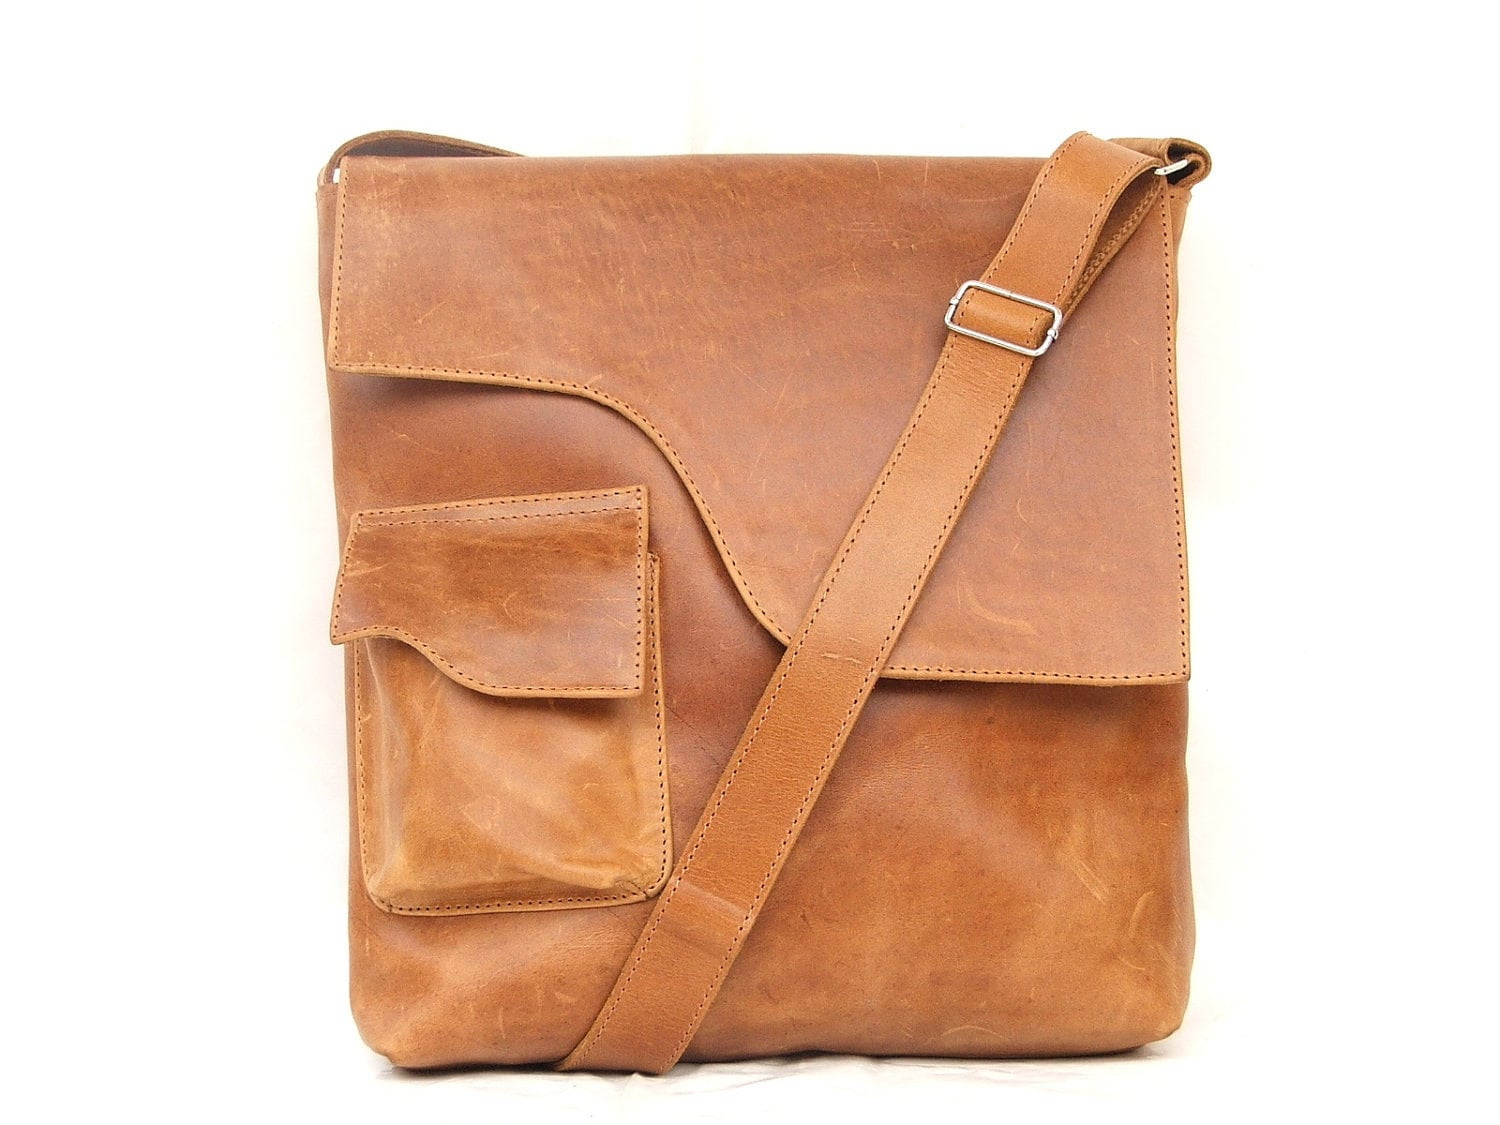 Bag Satchel leather Messenger bag Mens Women Leather handbag